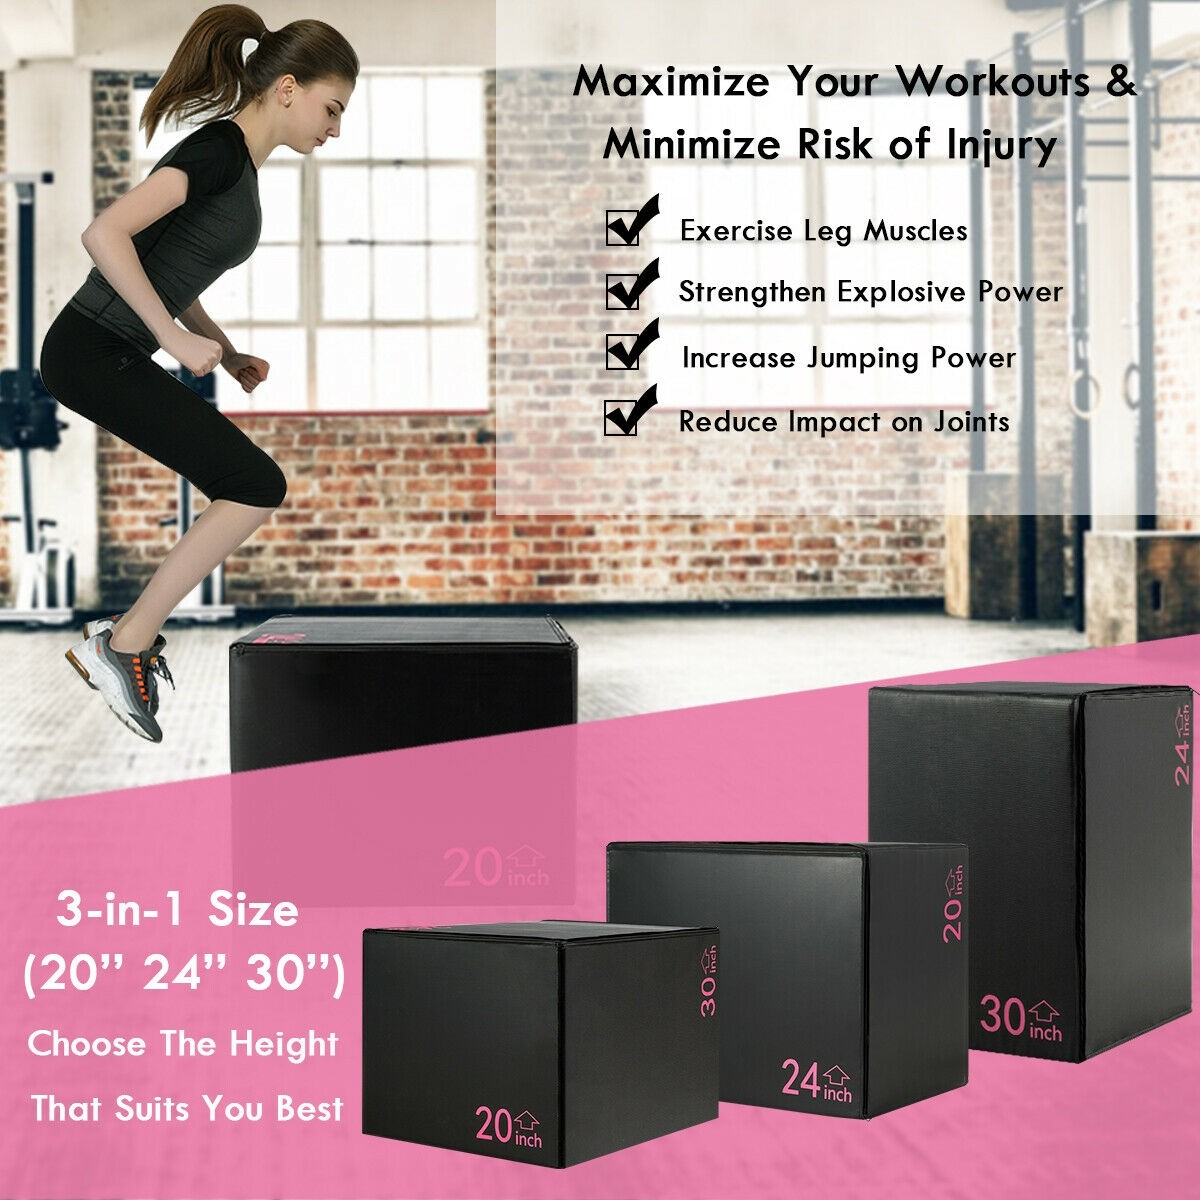 Details about Fitness 3 In 1 Foam Jumping Plyometric Box For Jump Leg  Training 20